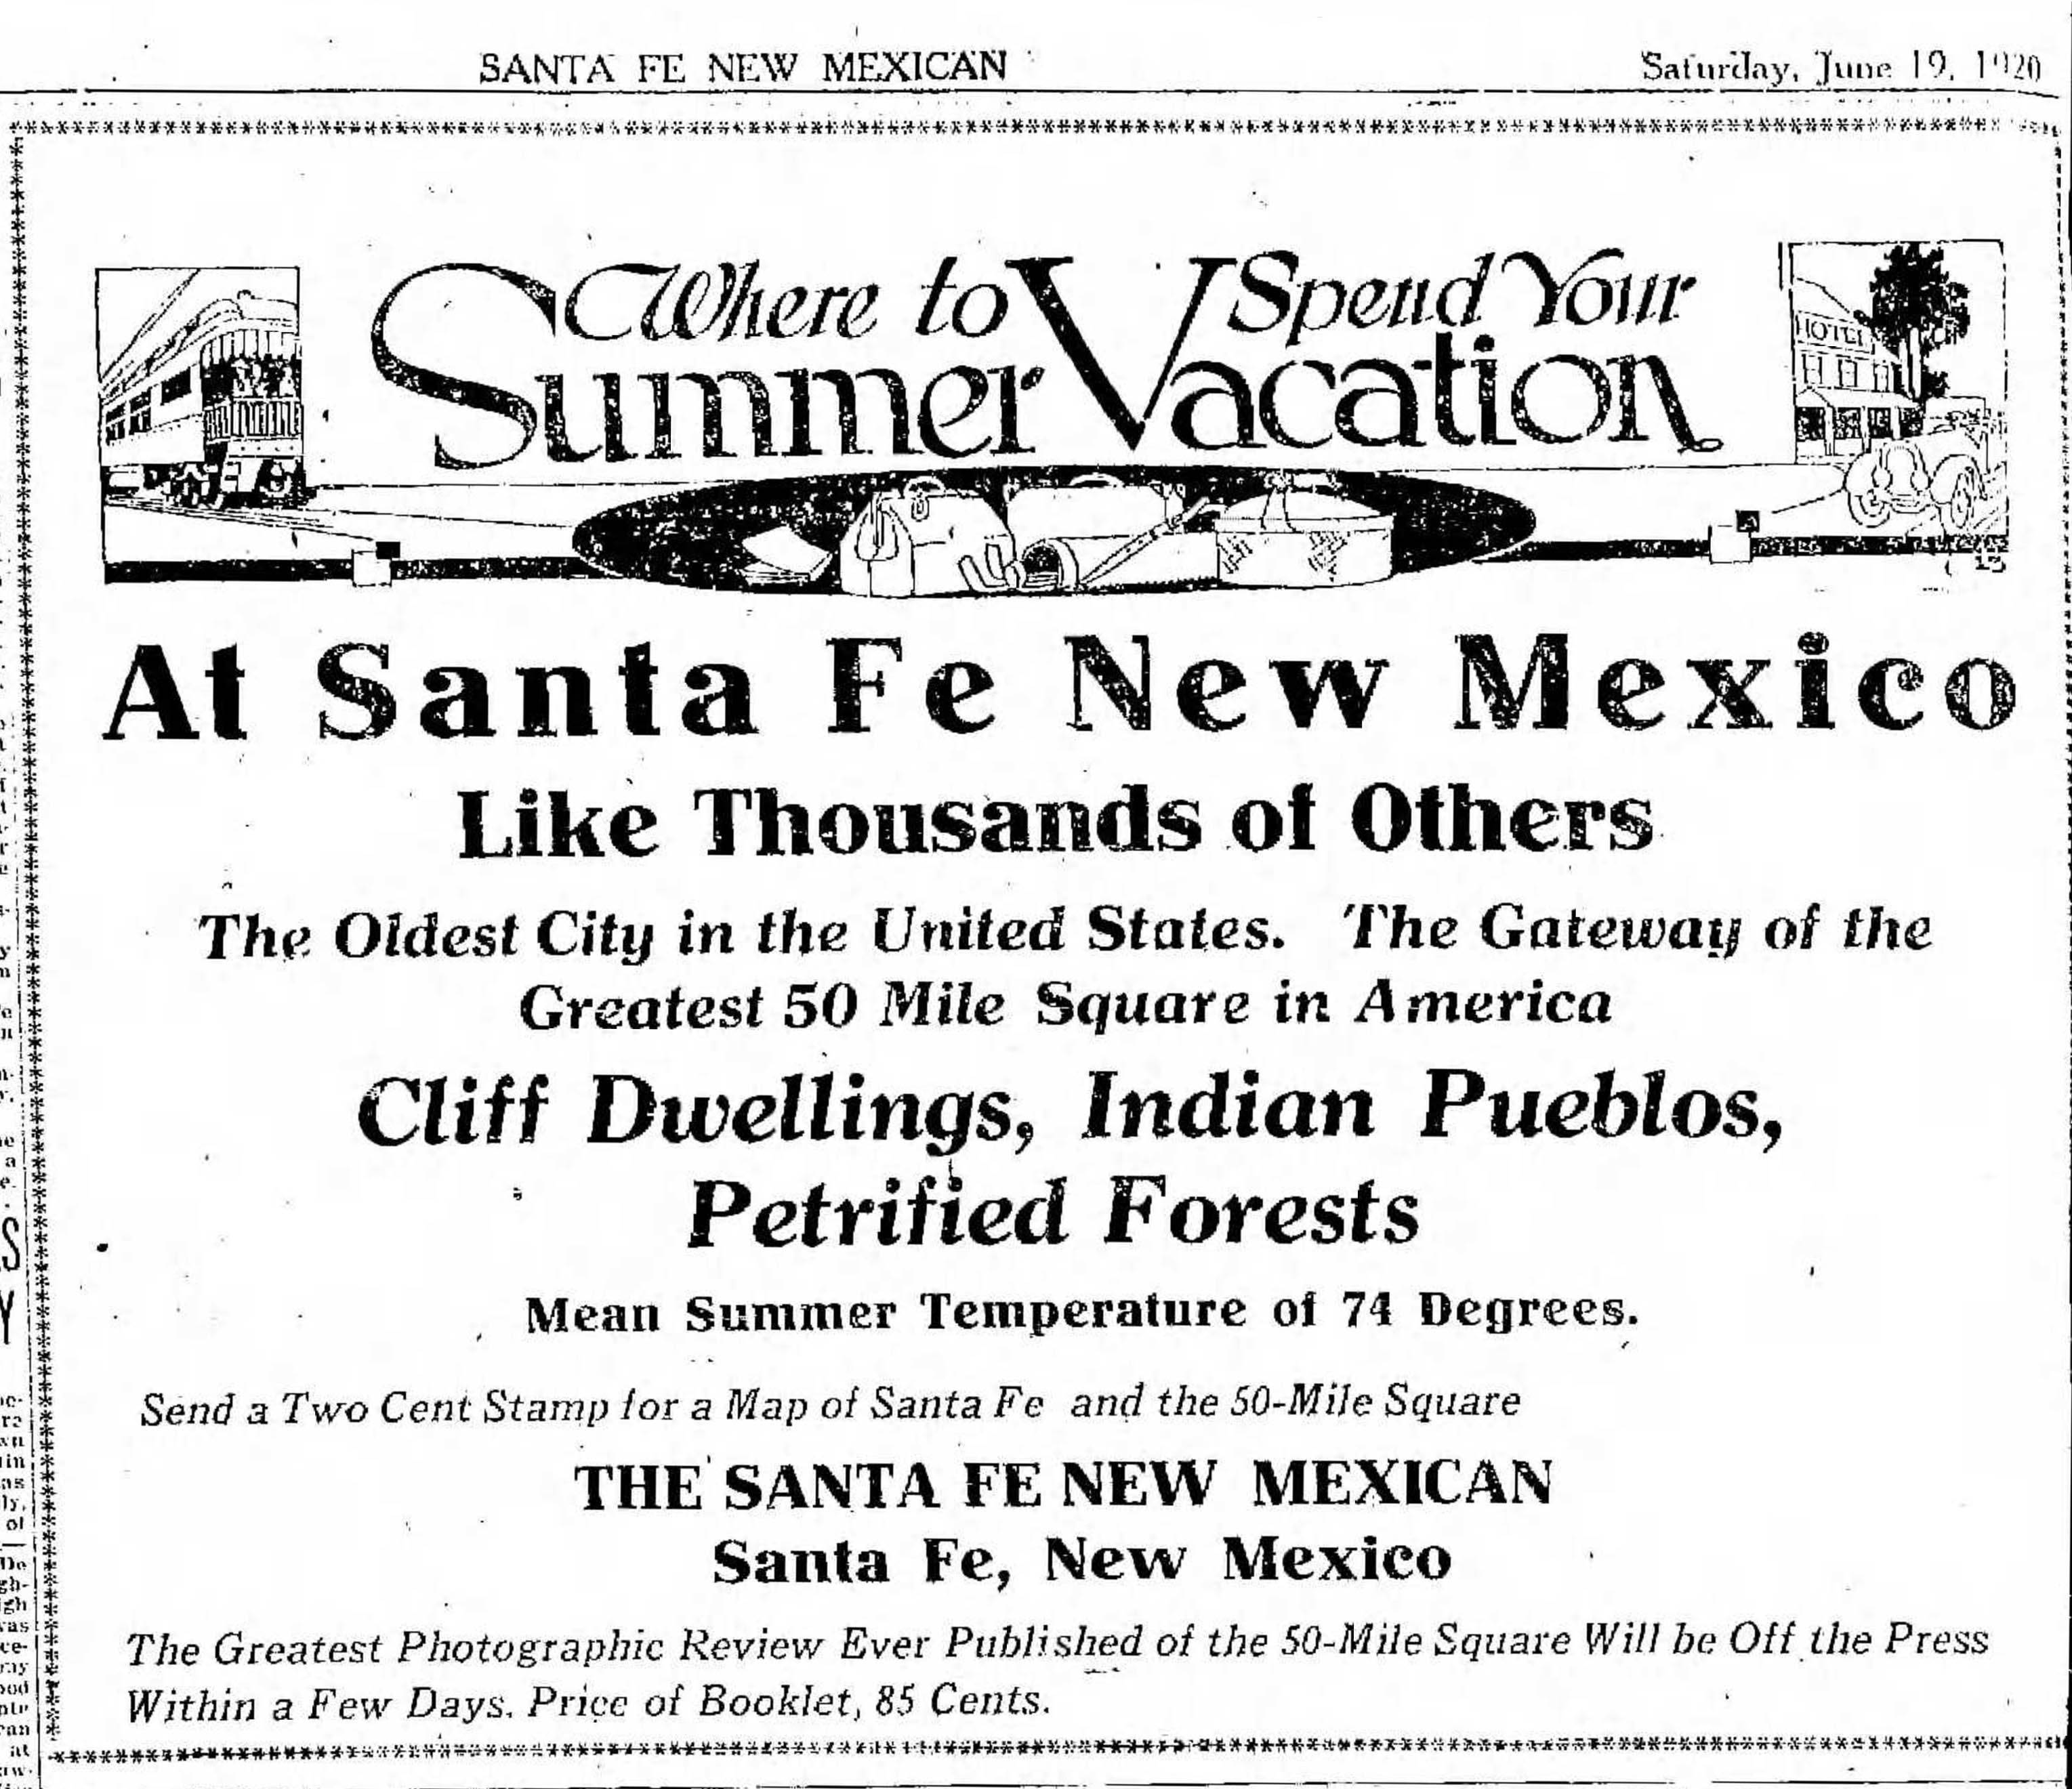 An ad from the Santa Fe New Mexican, June 19th, 1920.